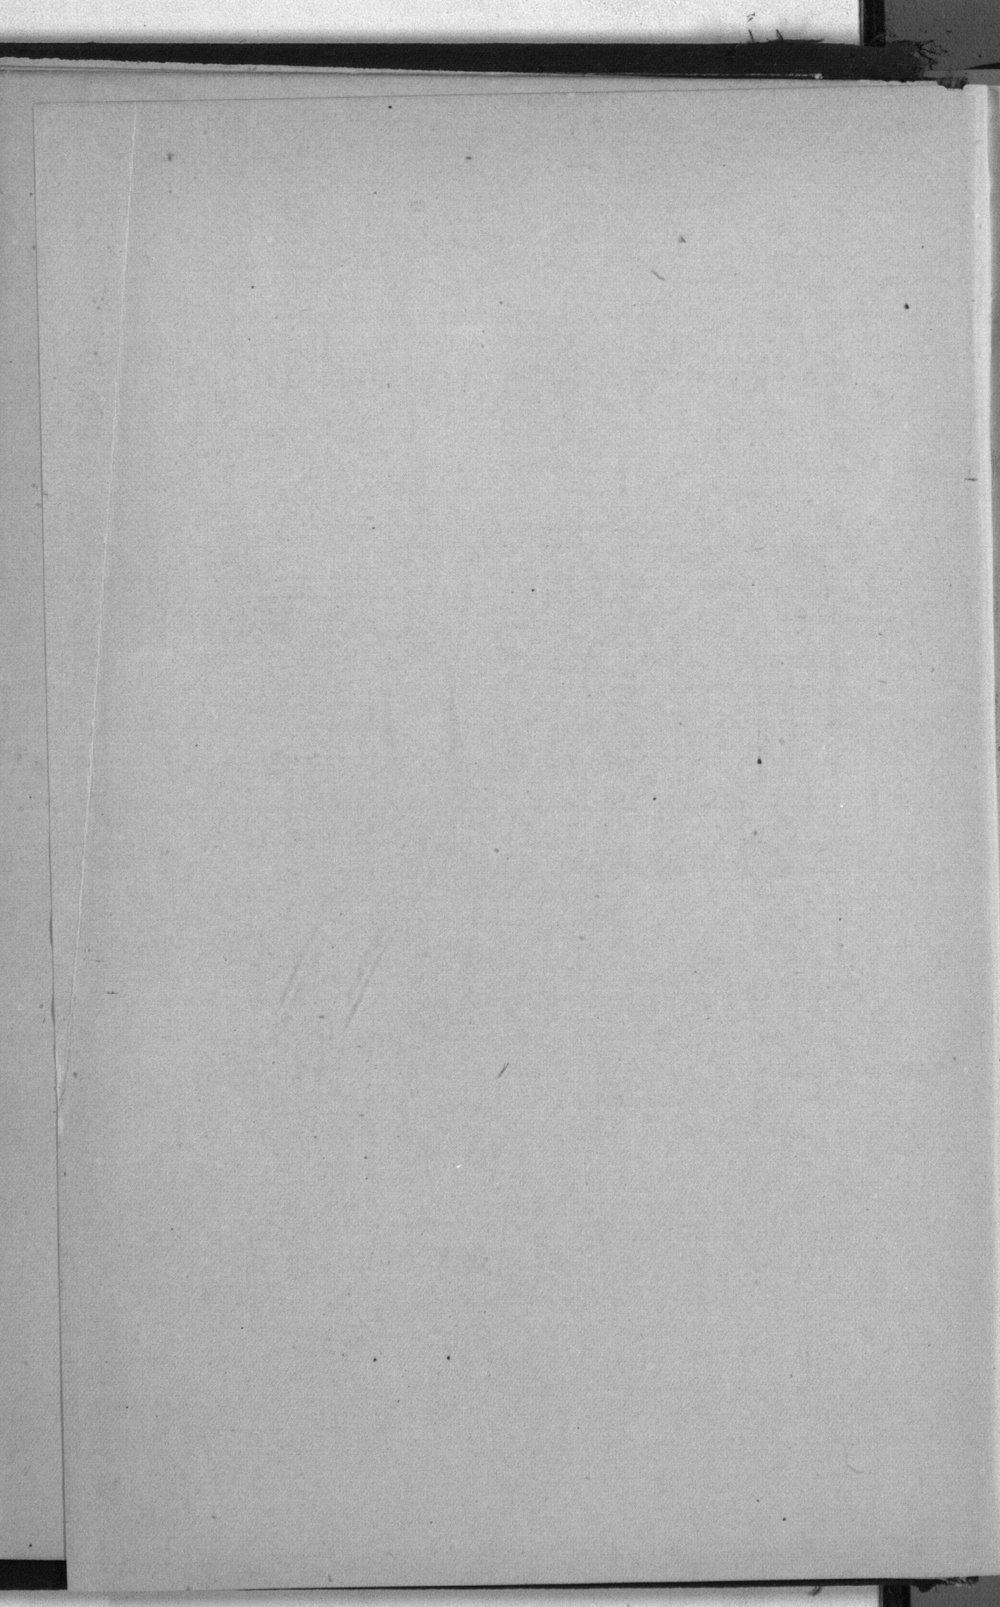 Second biennial report of the Kansas State Board of Agriculture, 1879-80 - blank page